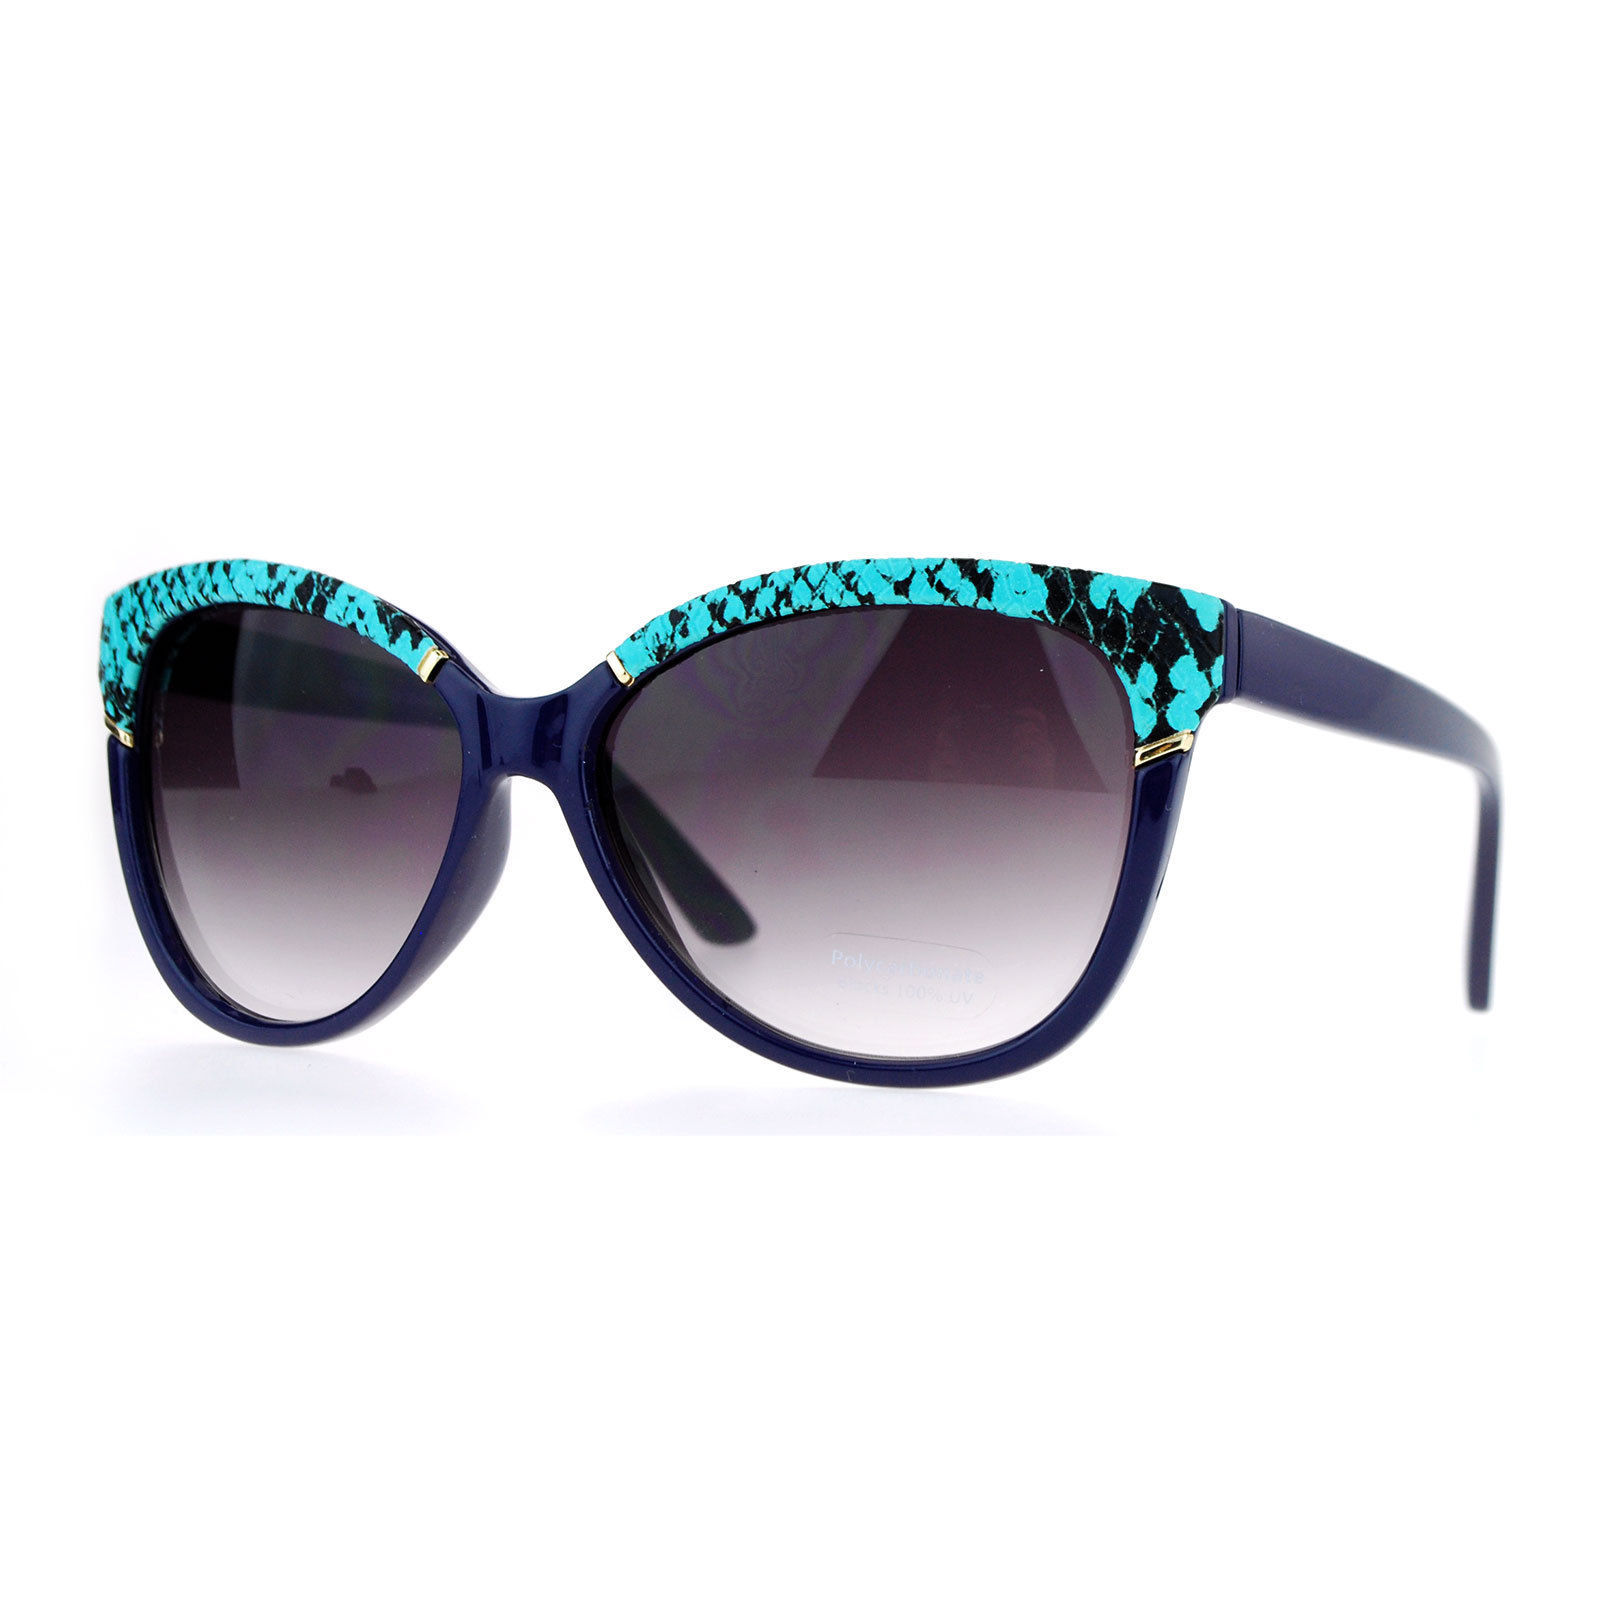 Womens Fashion Sunglasses Designer Square Cateye Reptile Top UV400